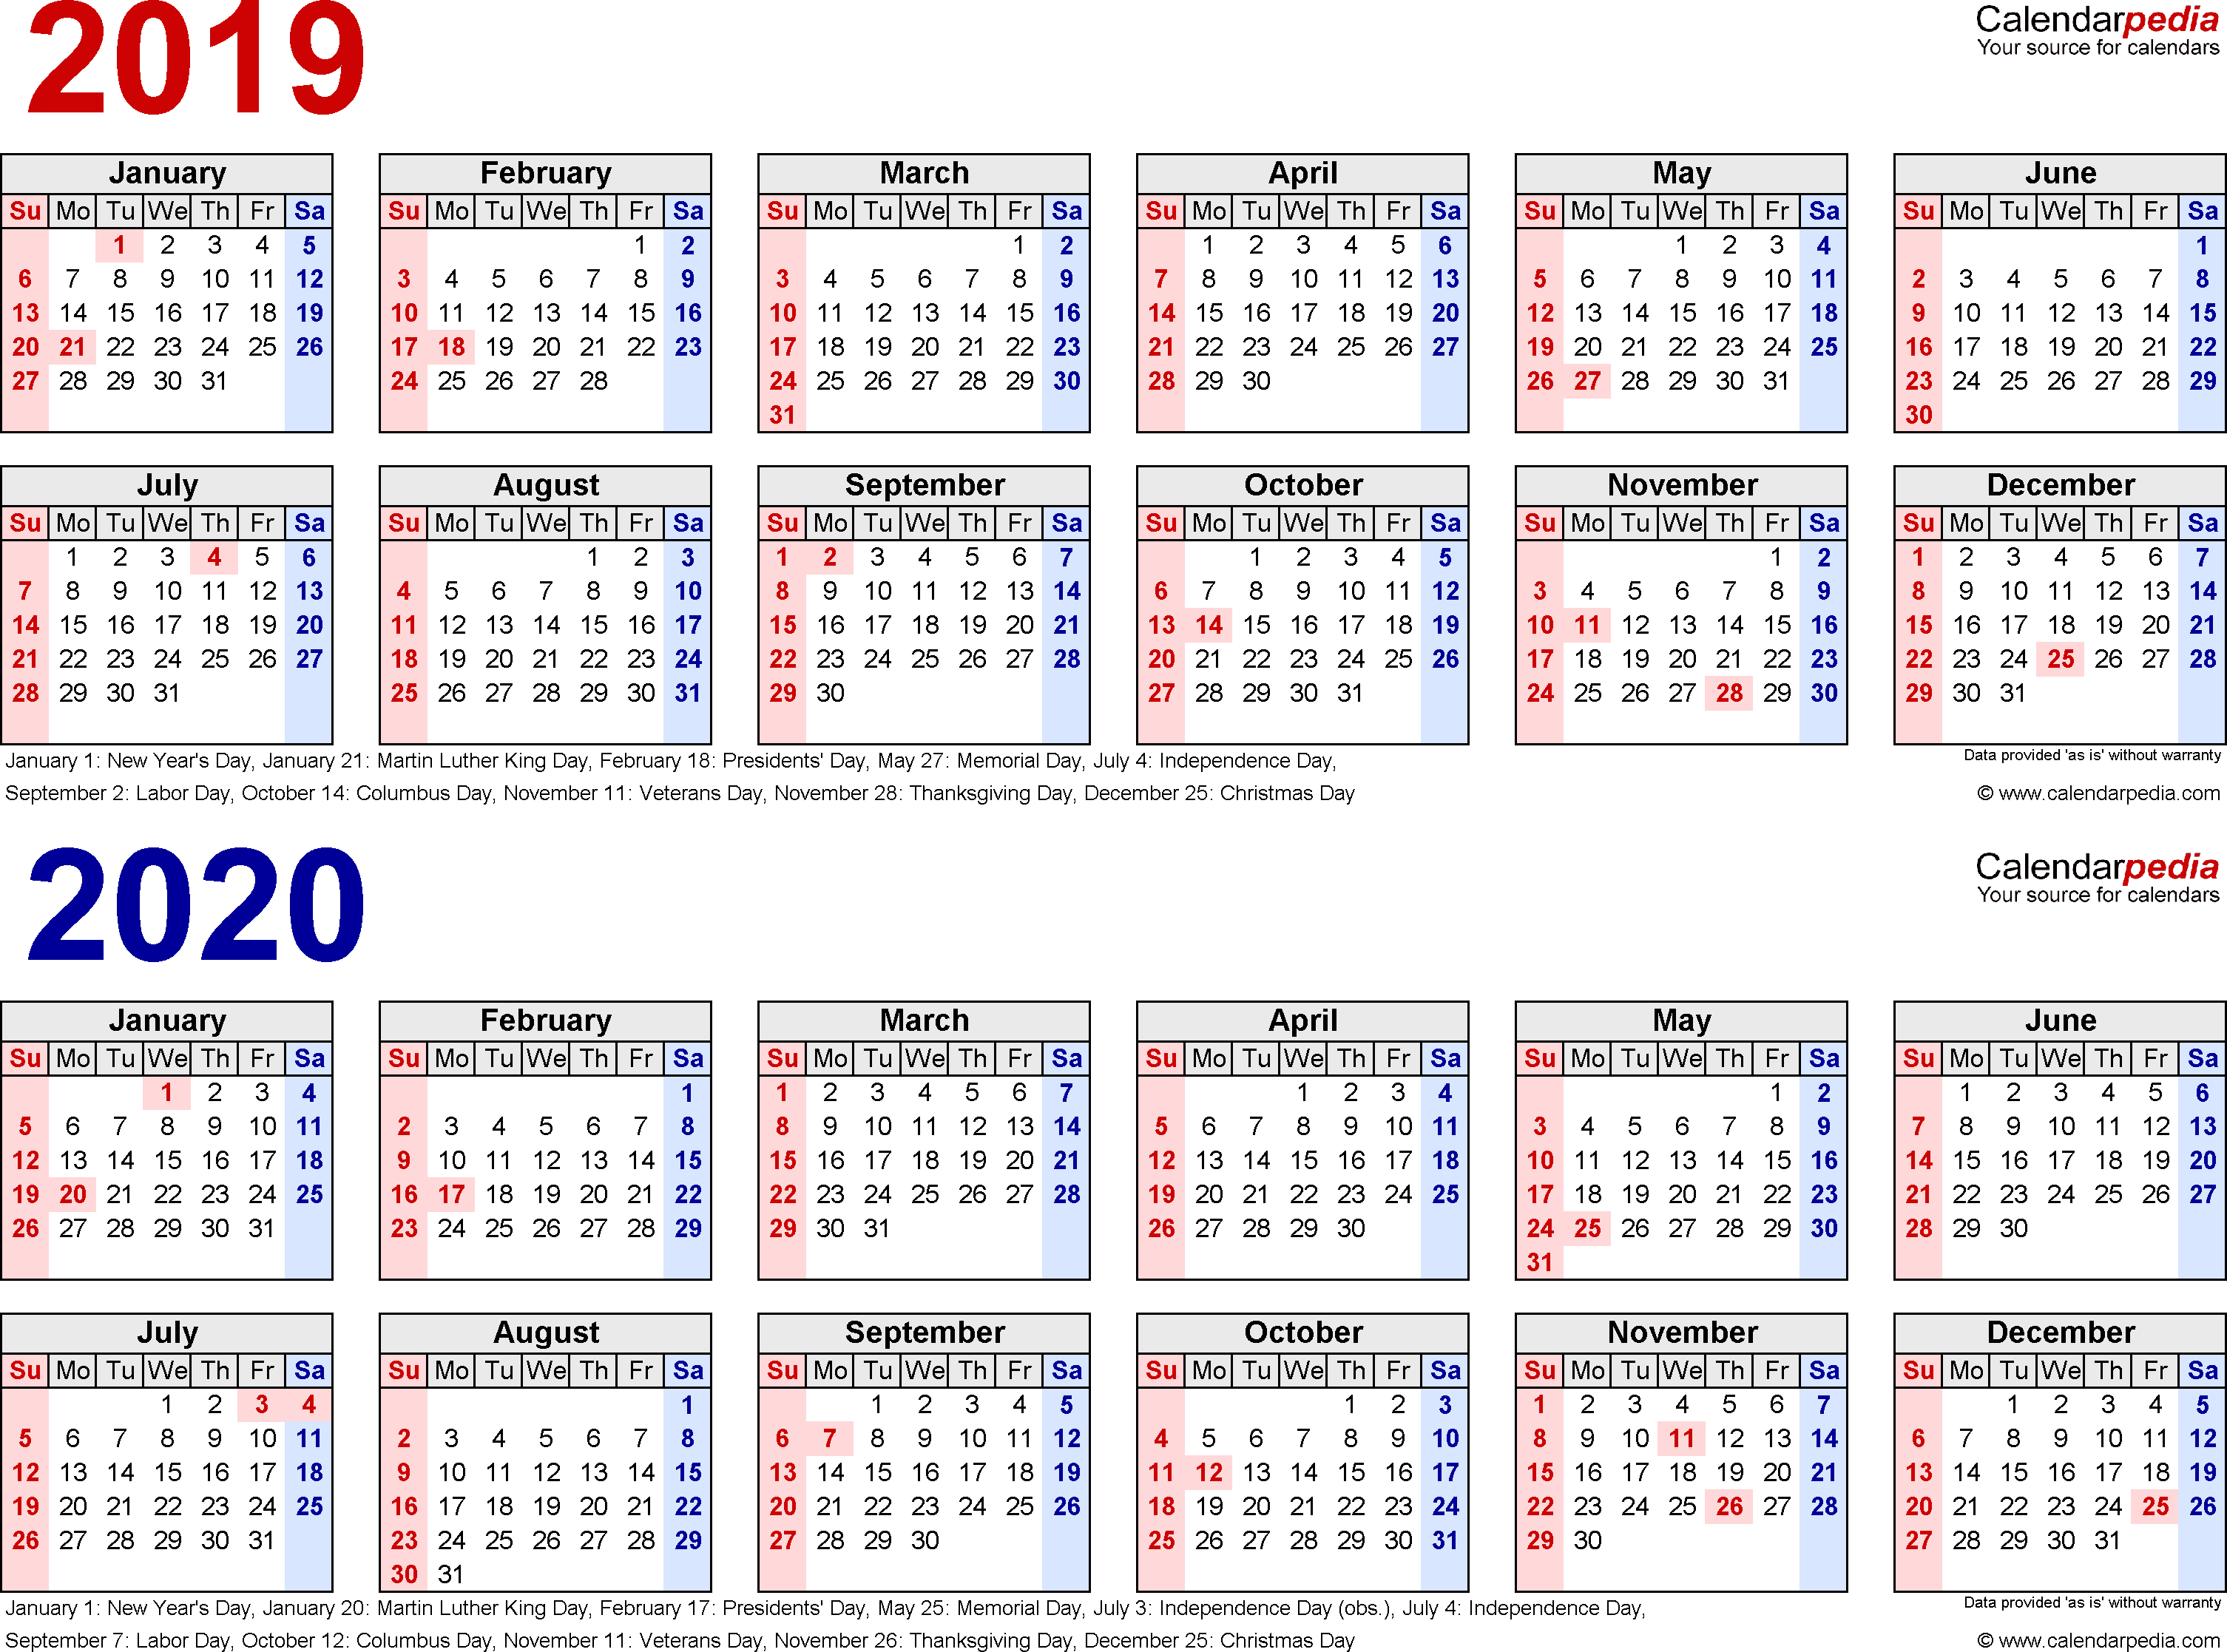 2019-2020 Calendar - Free Printable Two-Year Word Calendars within 2019 And 2020 Calendar One Page